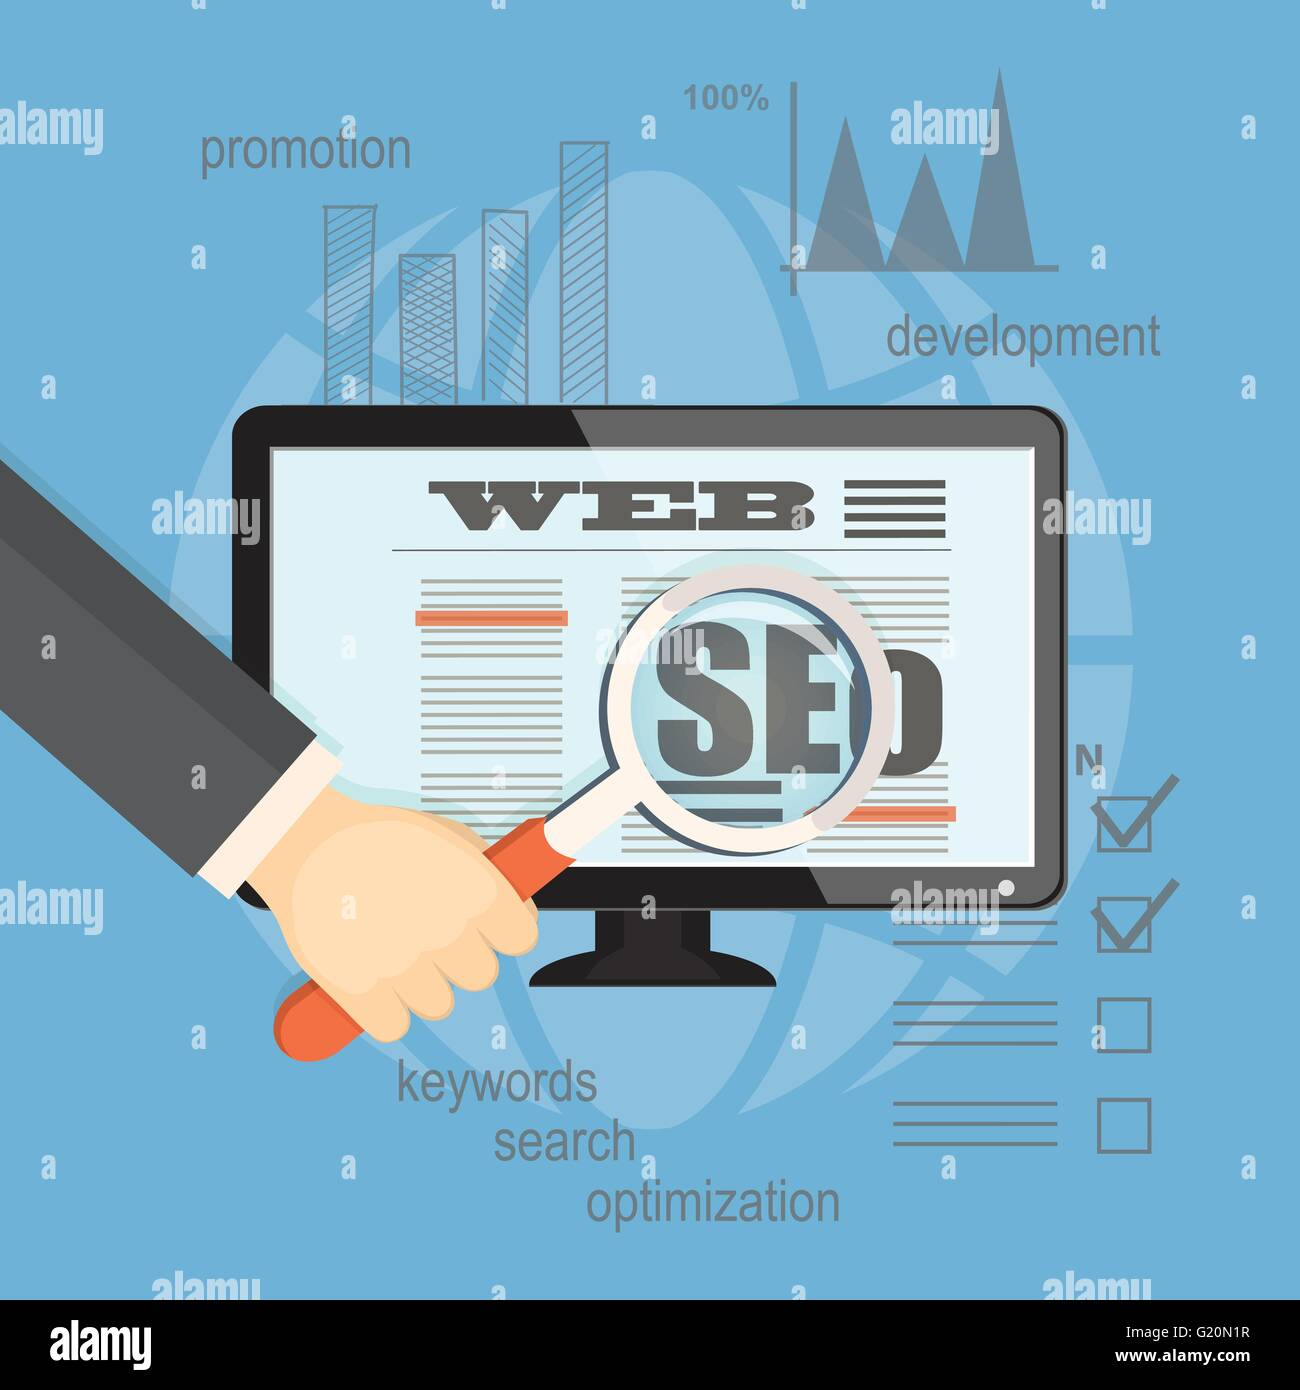 Flat  vector illustration. Concept of seo technology for business website. Hands with   magnifier, laptop and hand - Stock Image